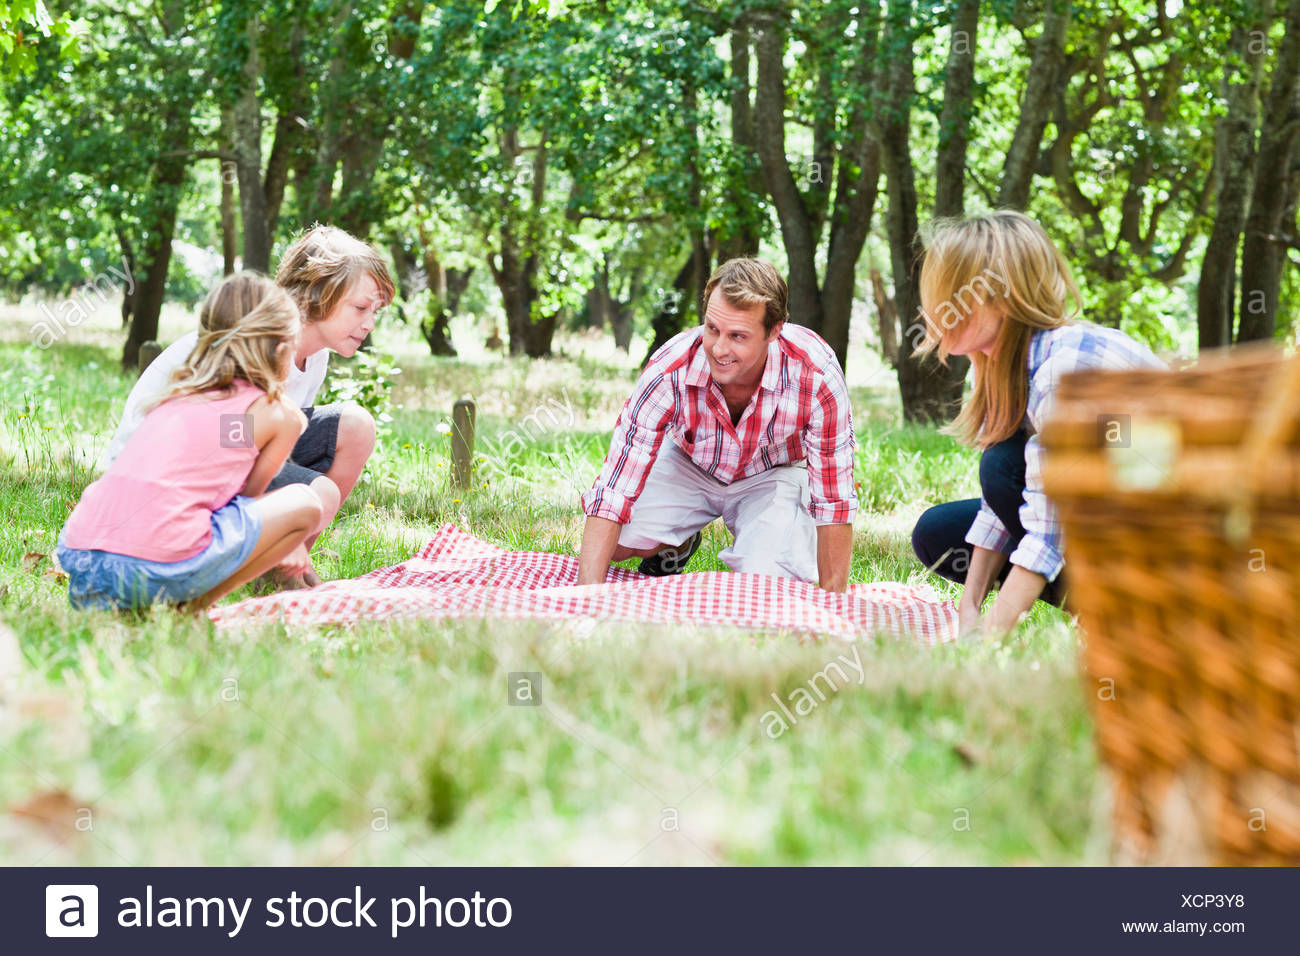 Family having picnic in park Photo Stock